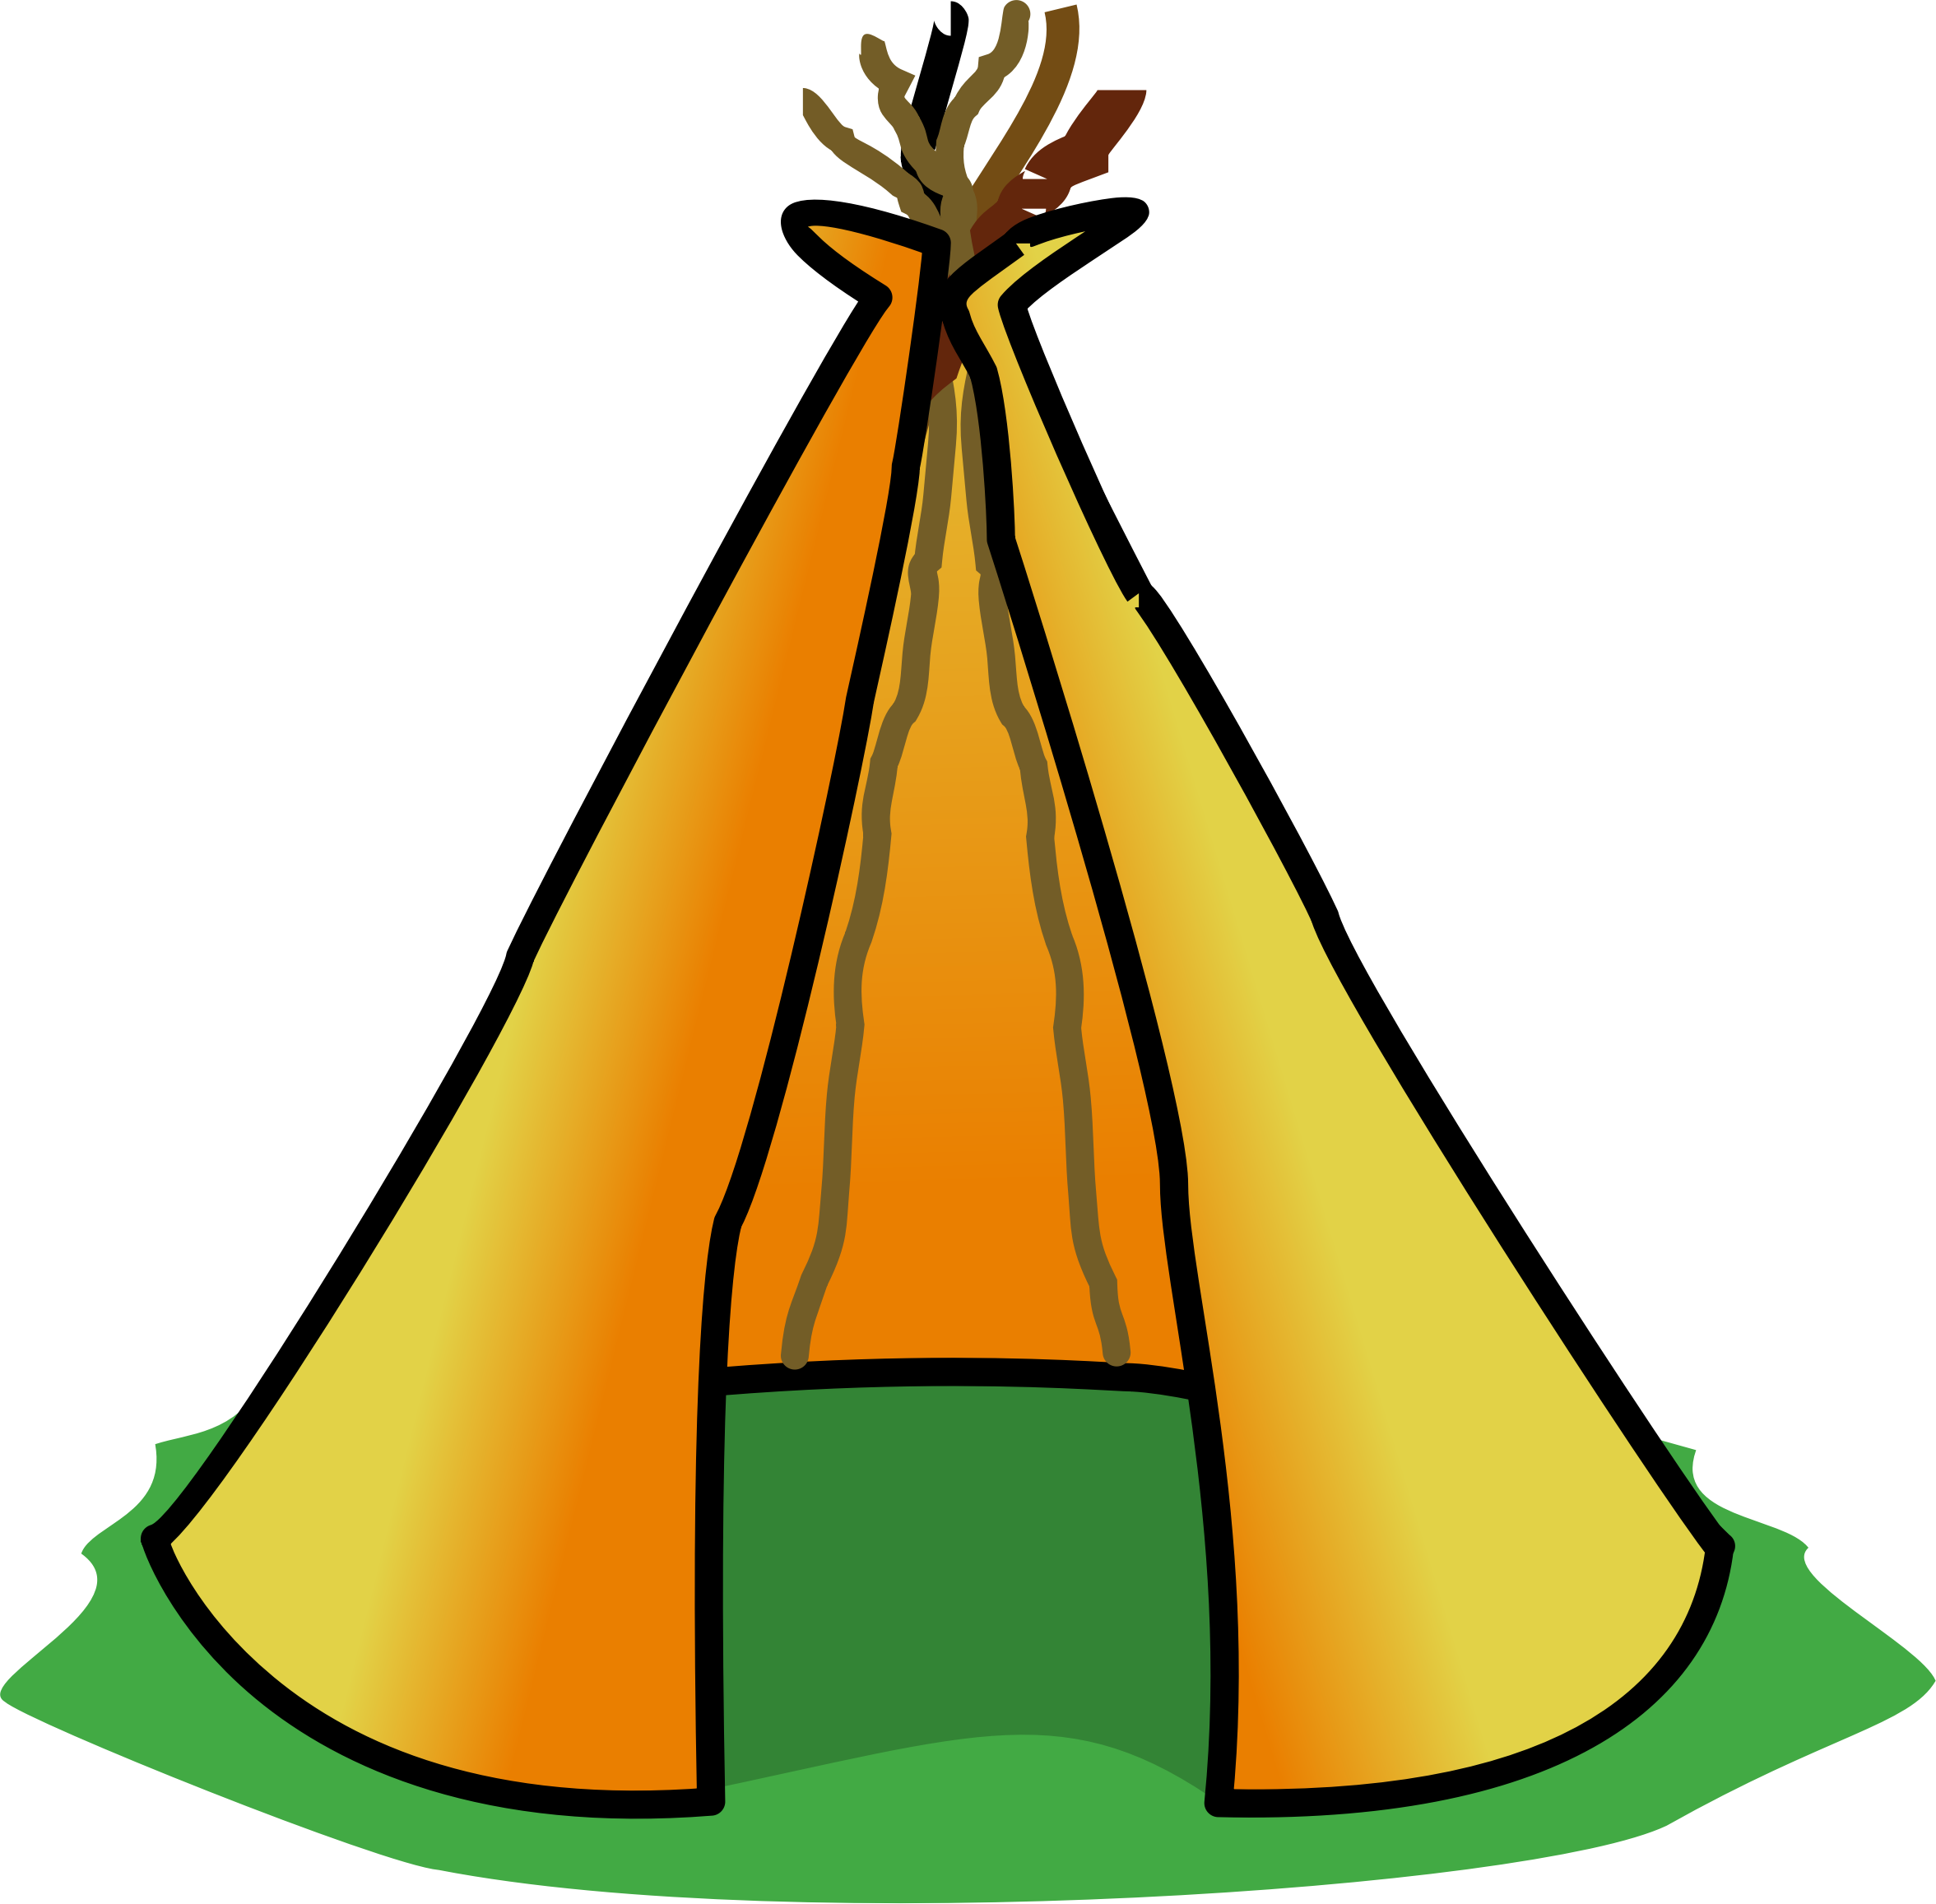 Teepee clipart 4 » Clipart Station.